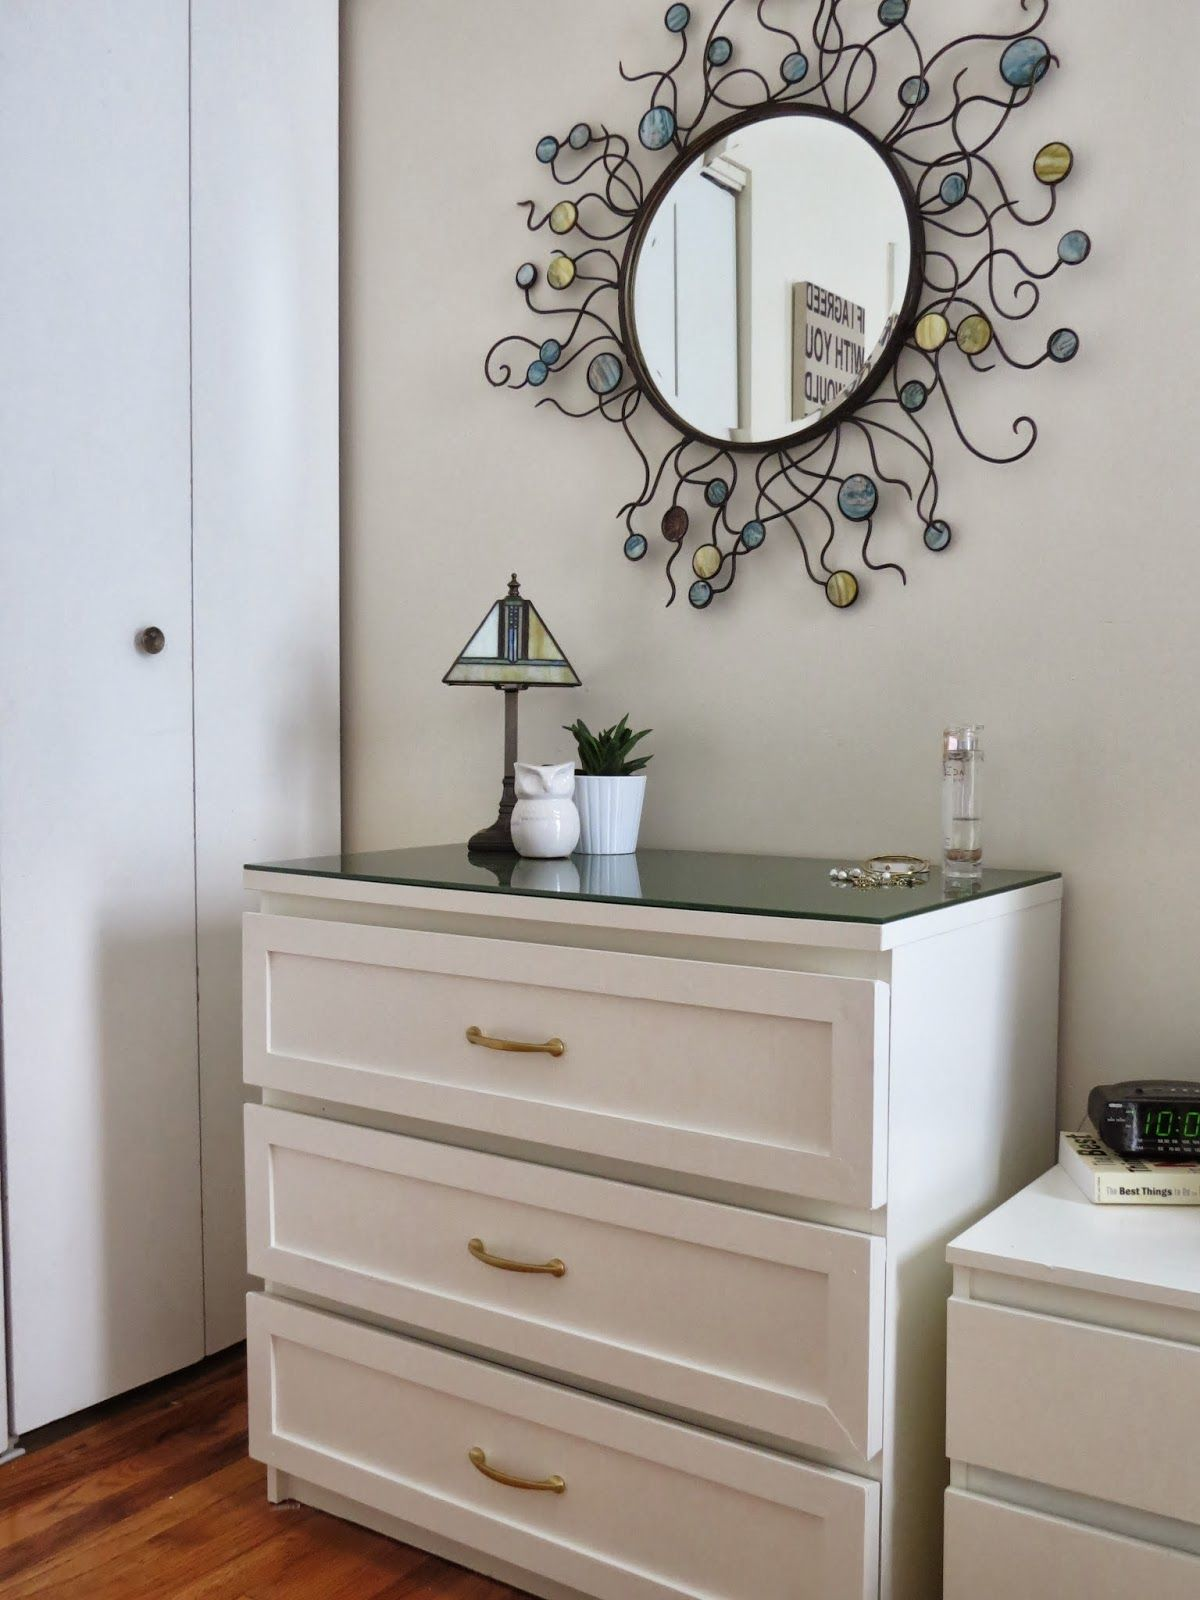 My First Ikea Hack Bedroom Preview Pinned From Brokelynese